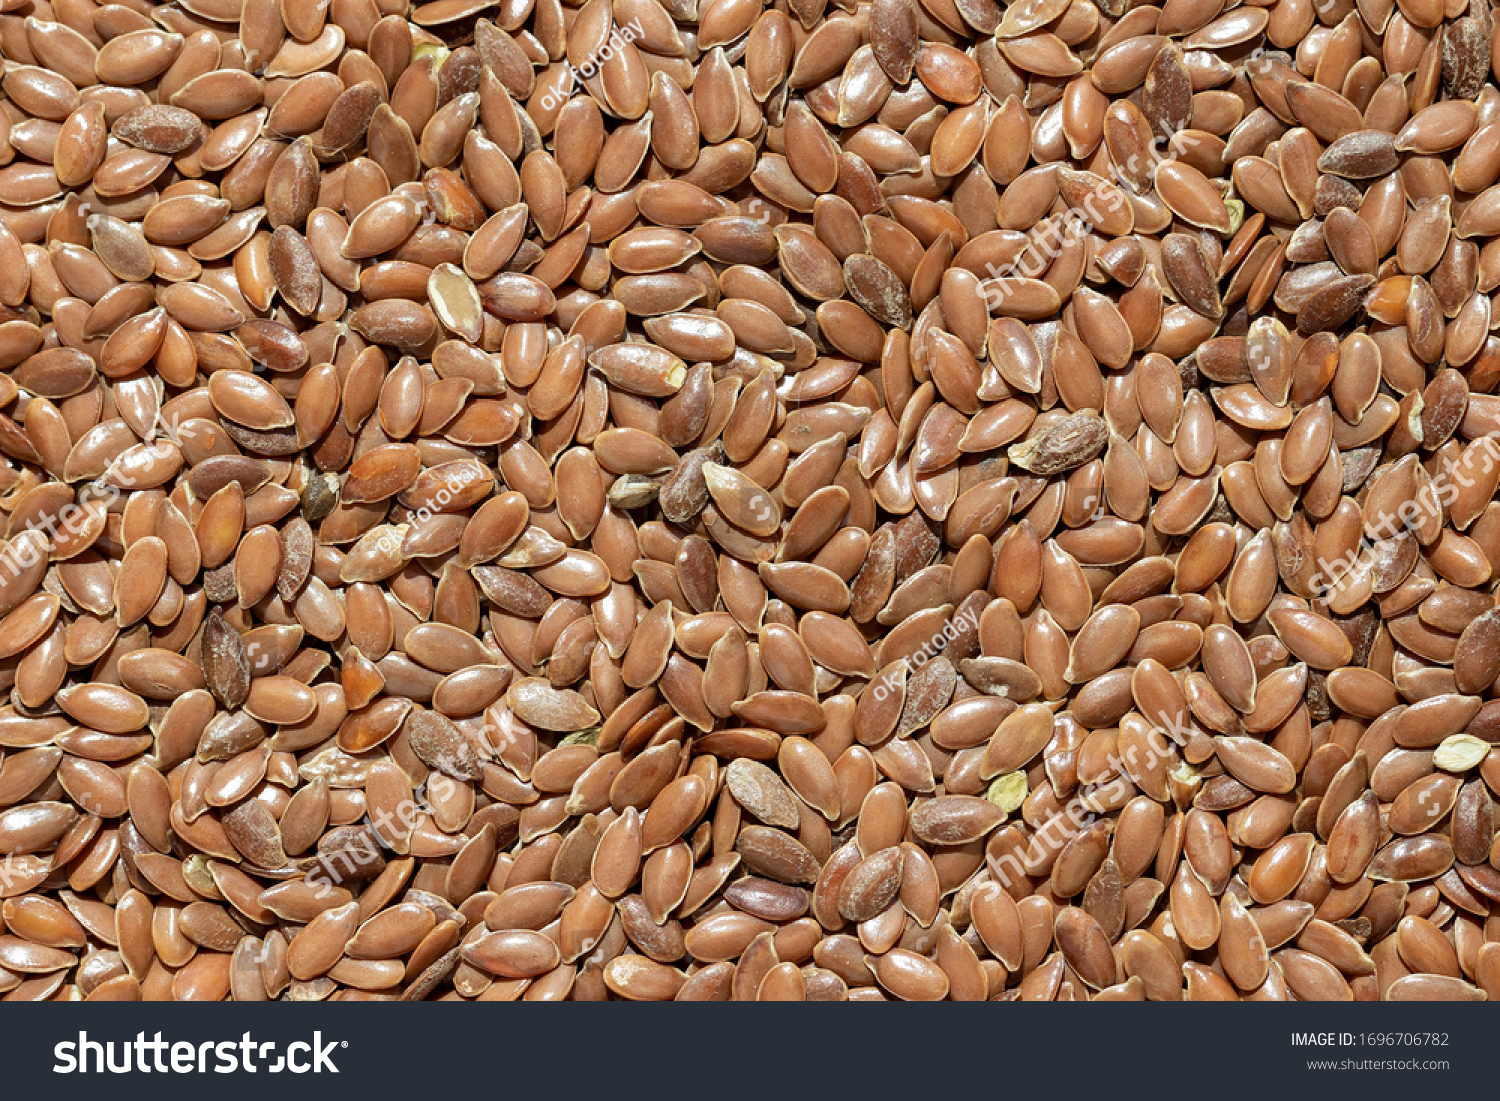 stock-photo-a-solid-background-of-peeled